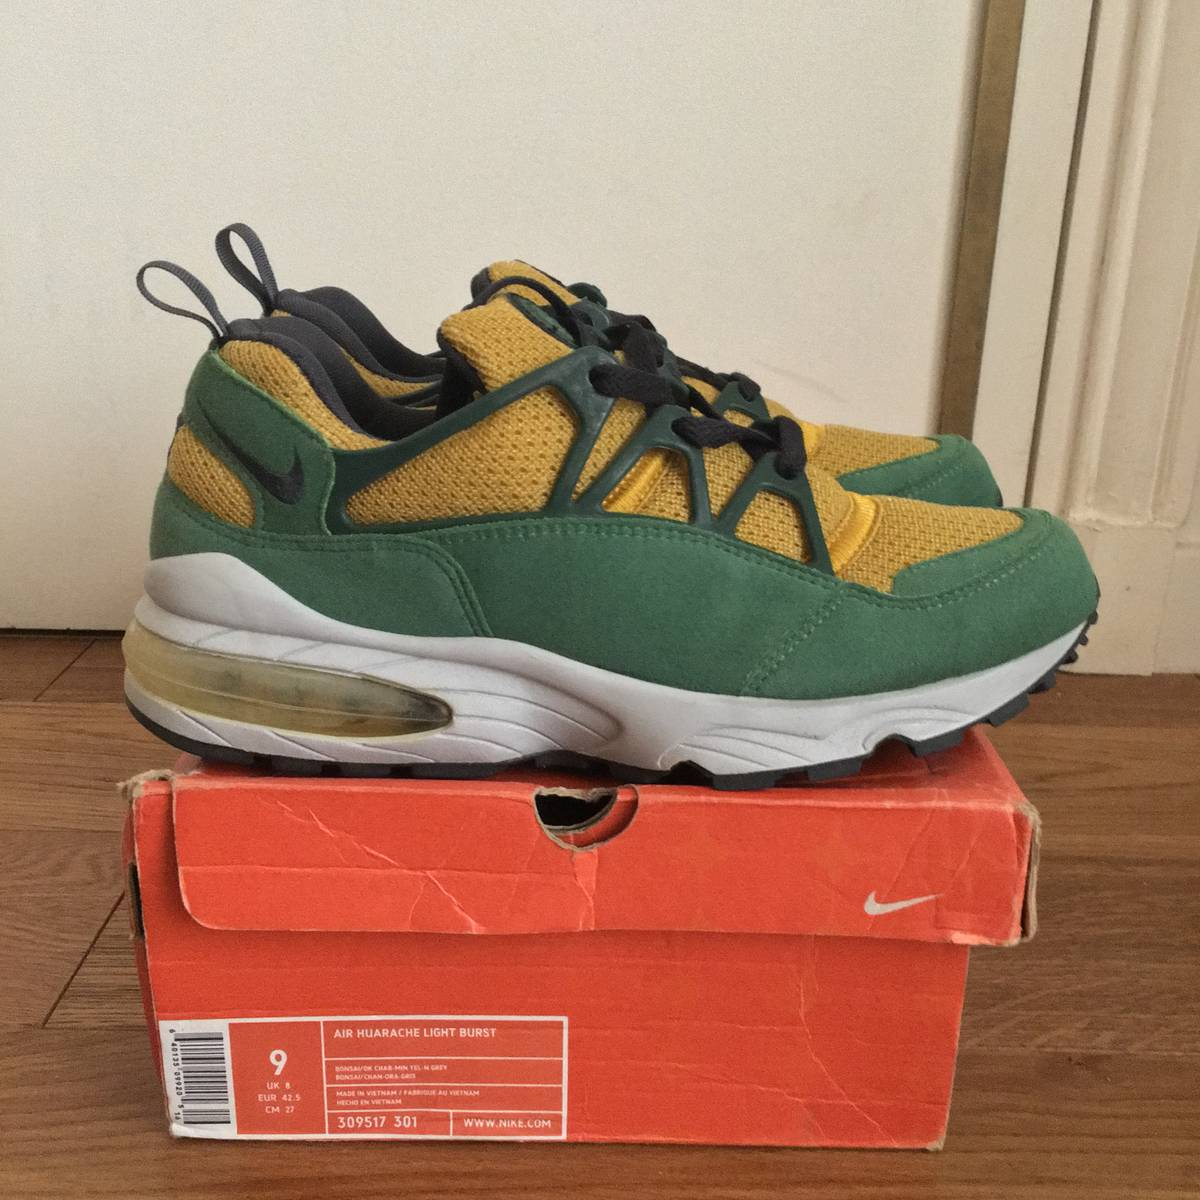 sale retailer 805f8 fd2b4 Nike Air Huarache Light Burst Brazil DS 9 US 2004 Factory Laced Jordan Kaws  Supreme CDG ...